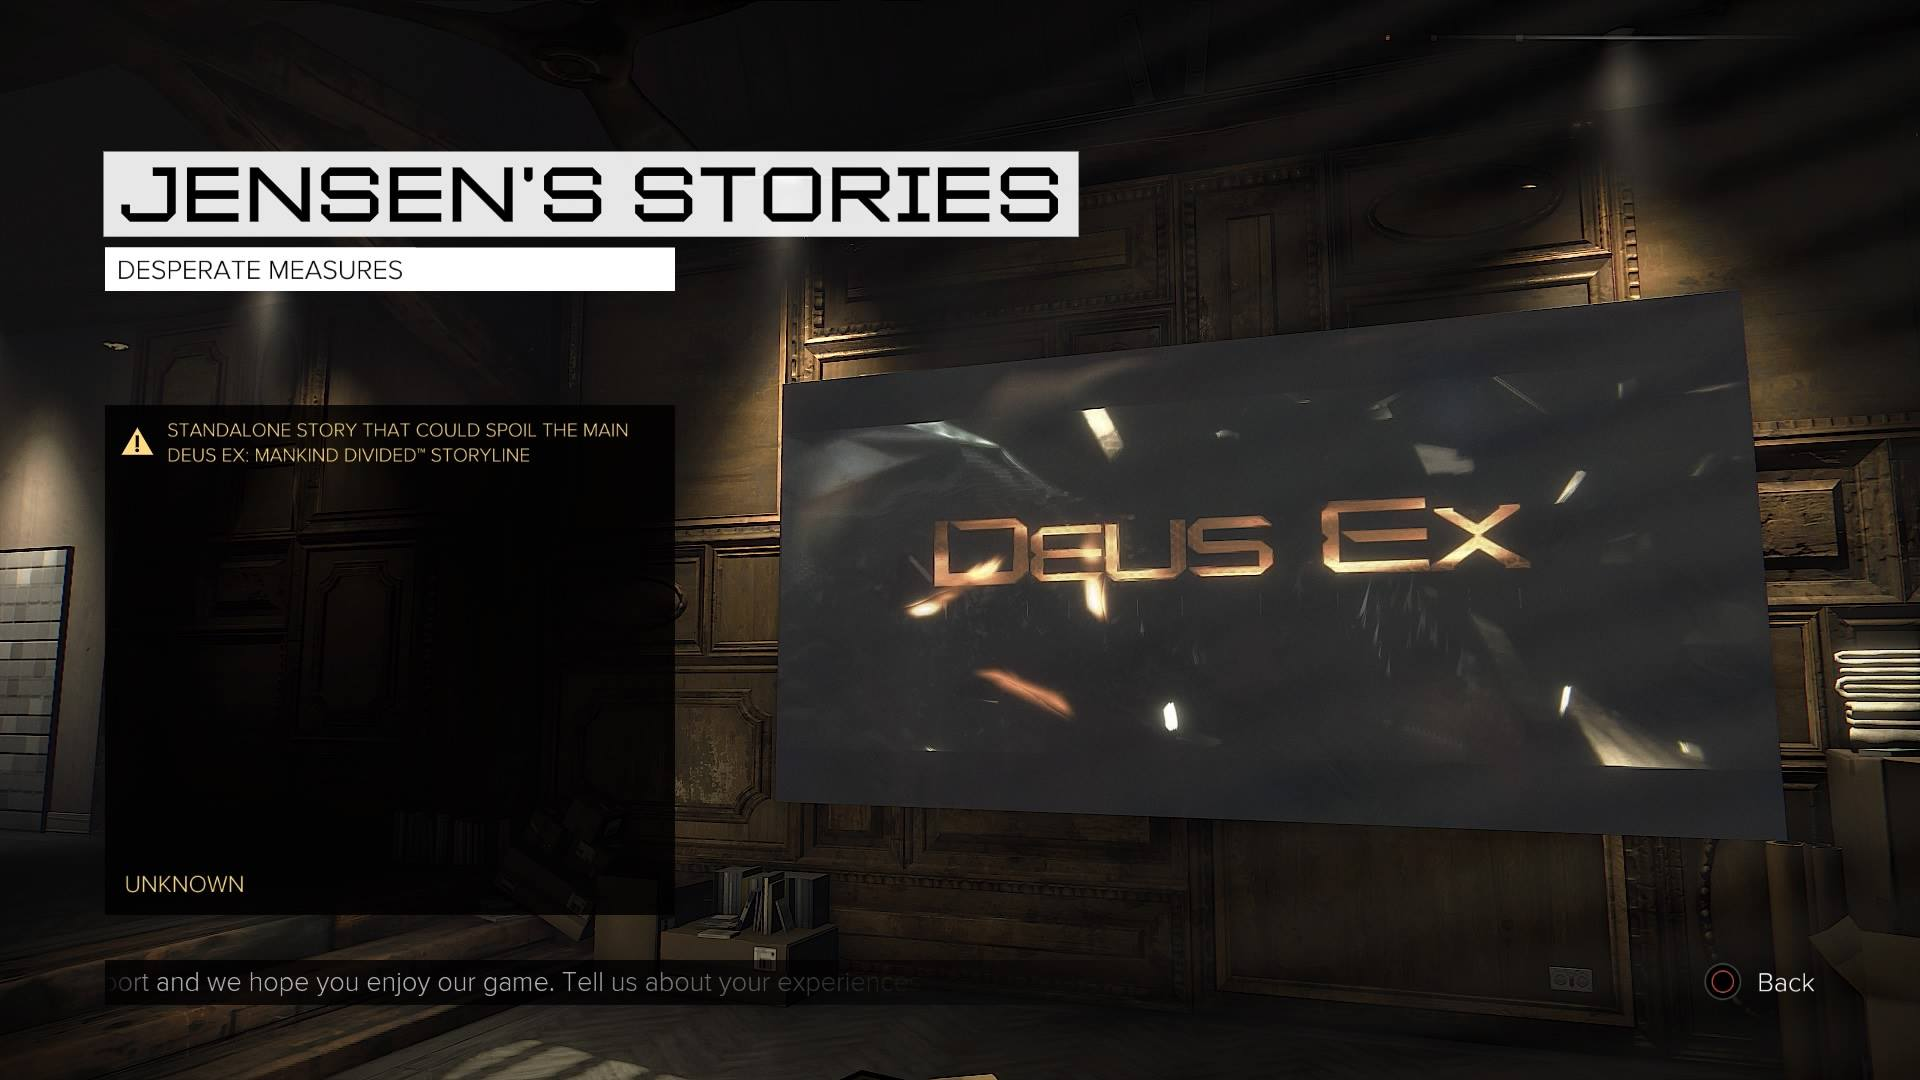 Deus Ex Jensens Stories